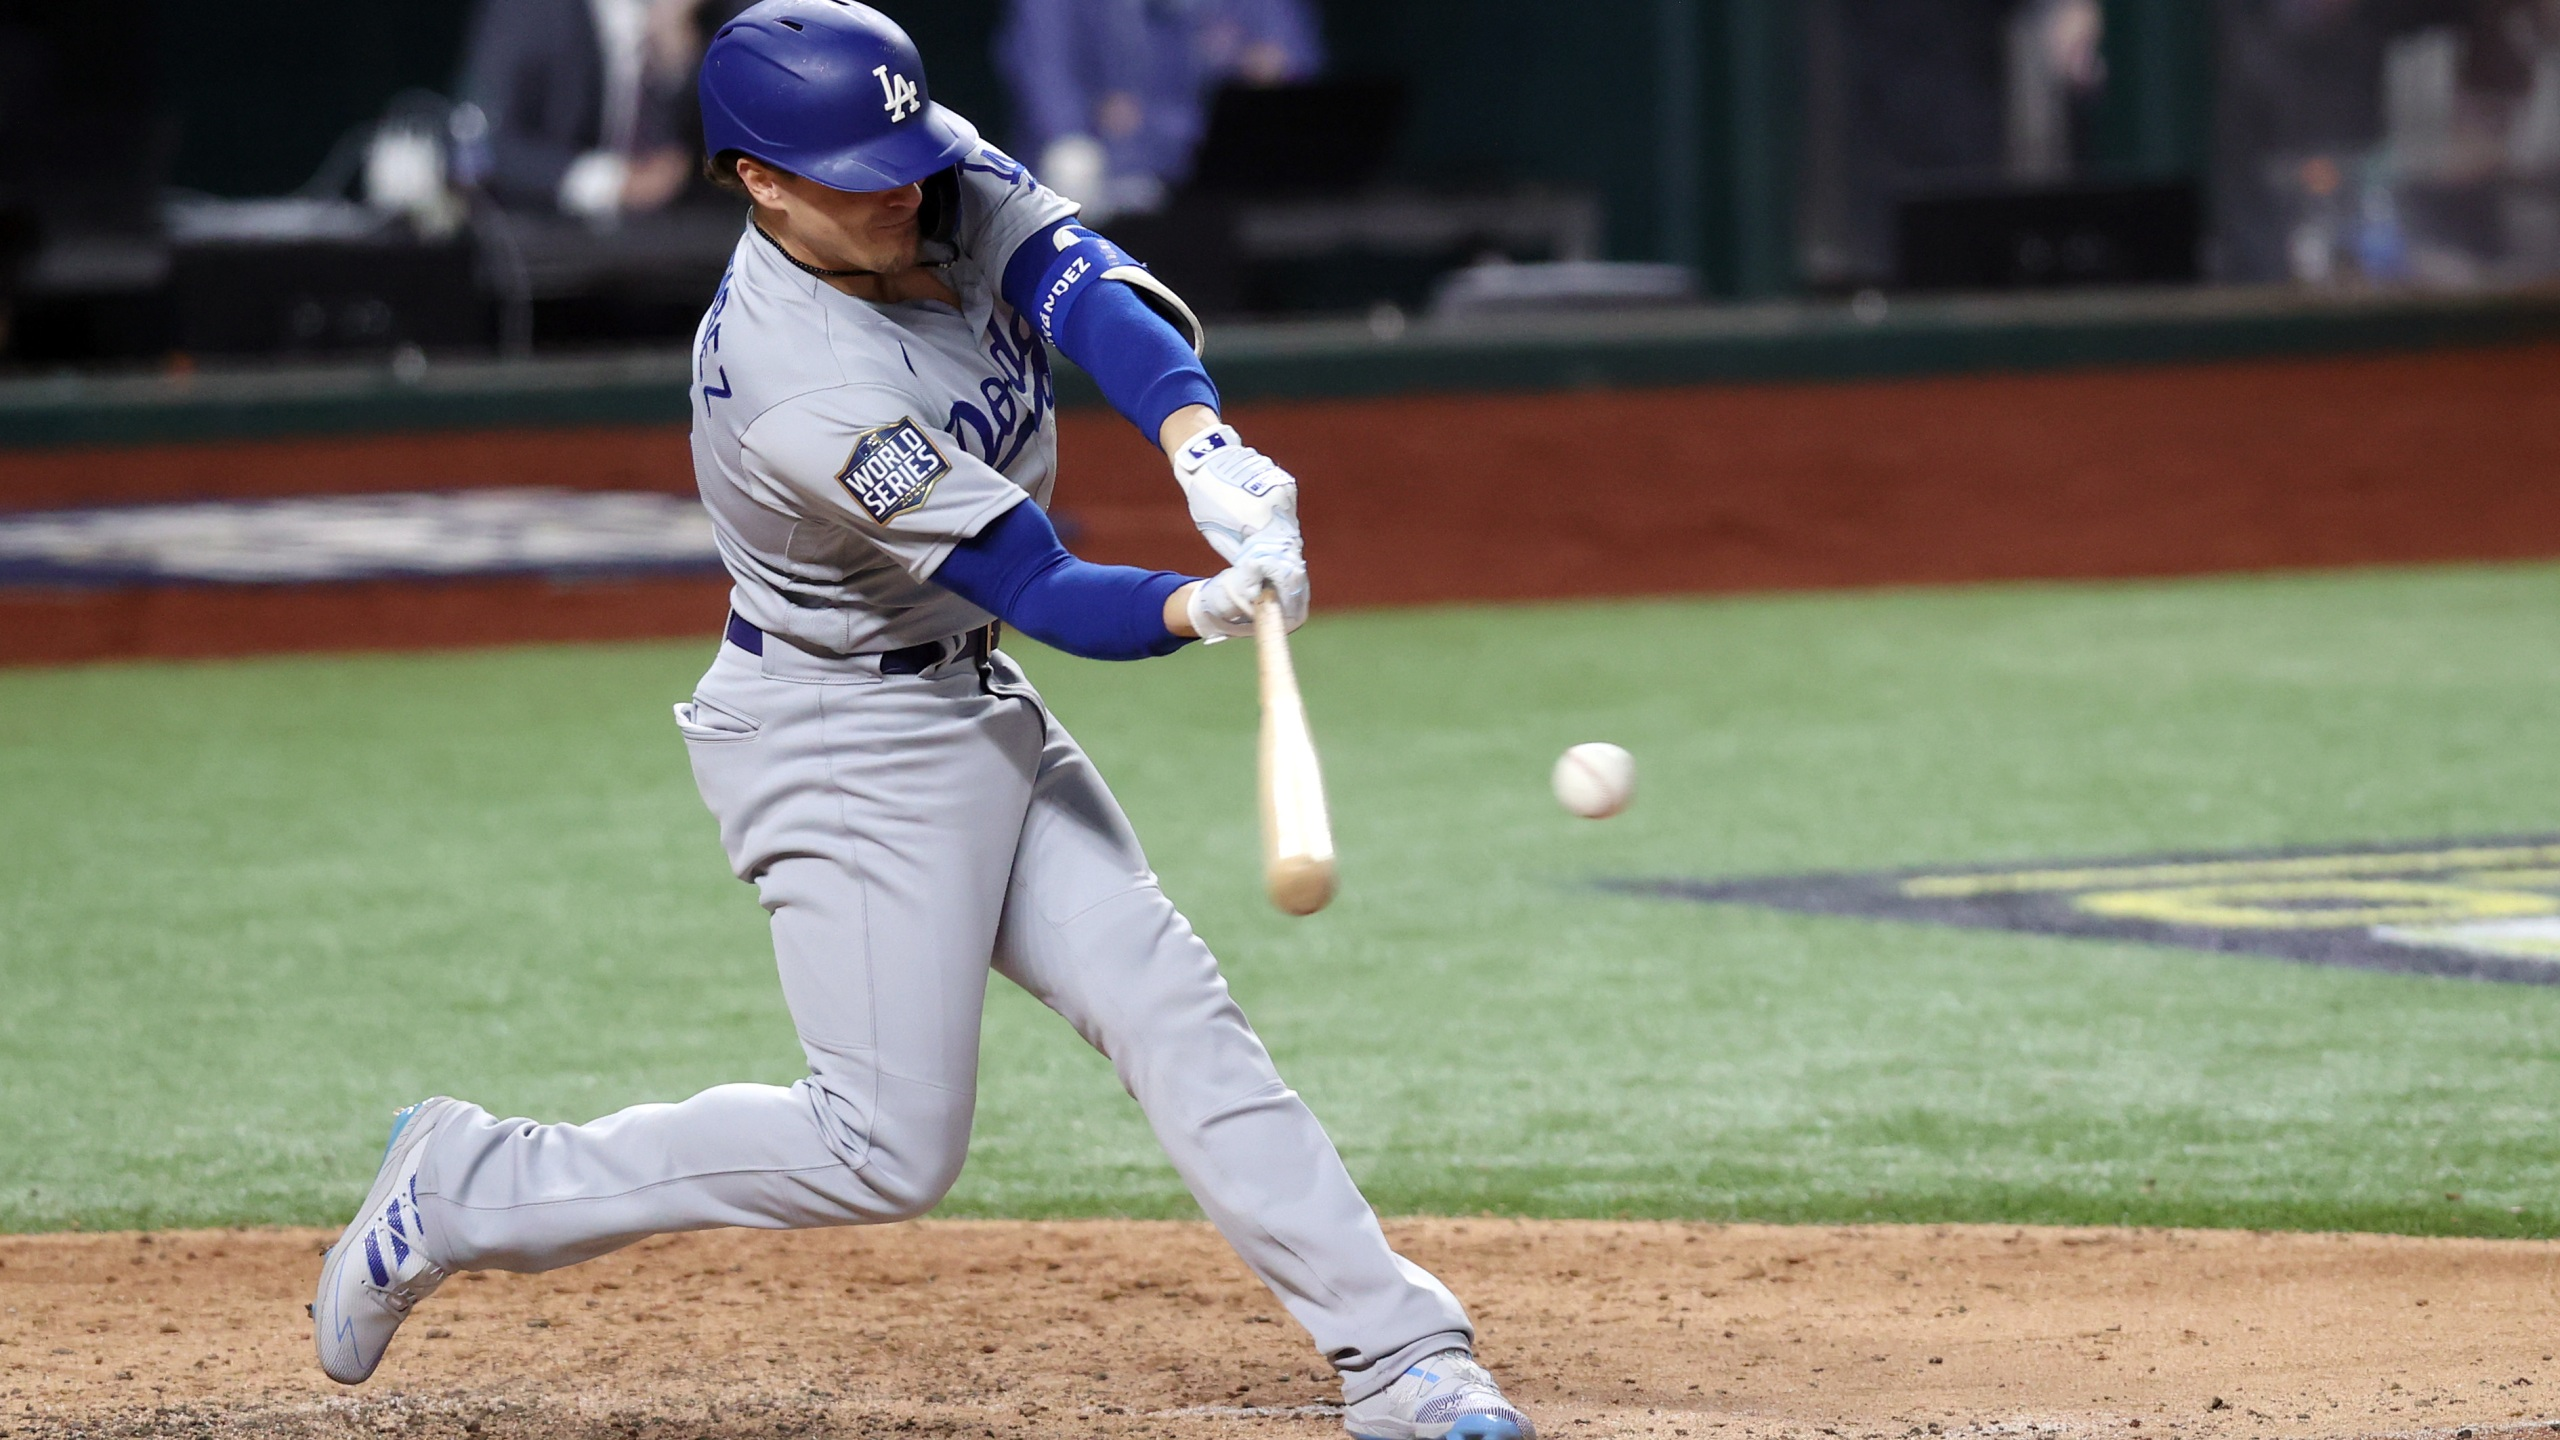 Enrique Hernandez #14 of the Los Angeles Dodgers hits an RBI double against the Tampa Bay Rays during the sixth inning in Game Four of the 2020 MLB World Series at Globe Life Field on October 24, 2020 in Arlington, Texas. (Tom Pennington/Getty Images)